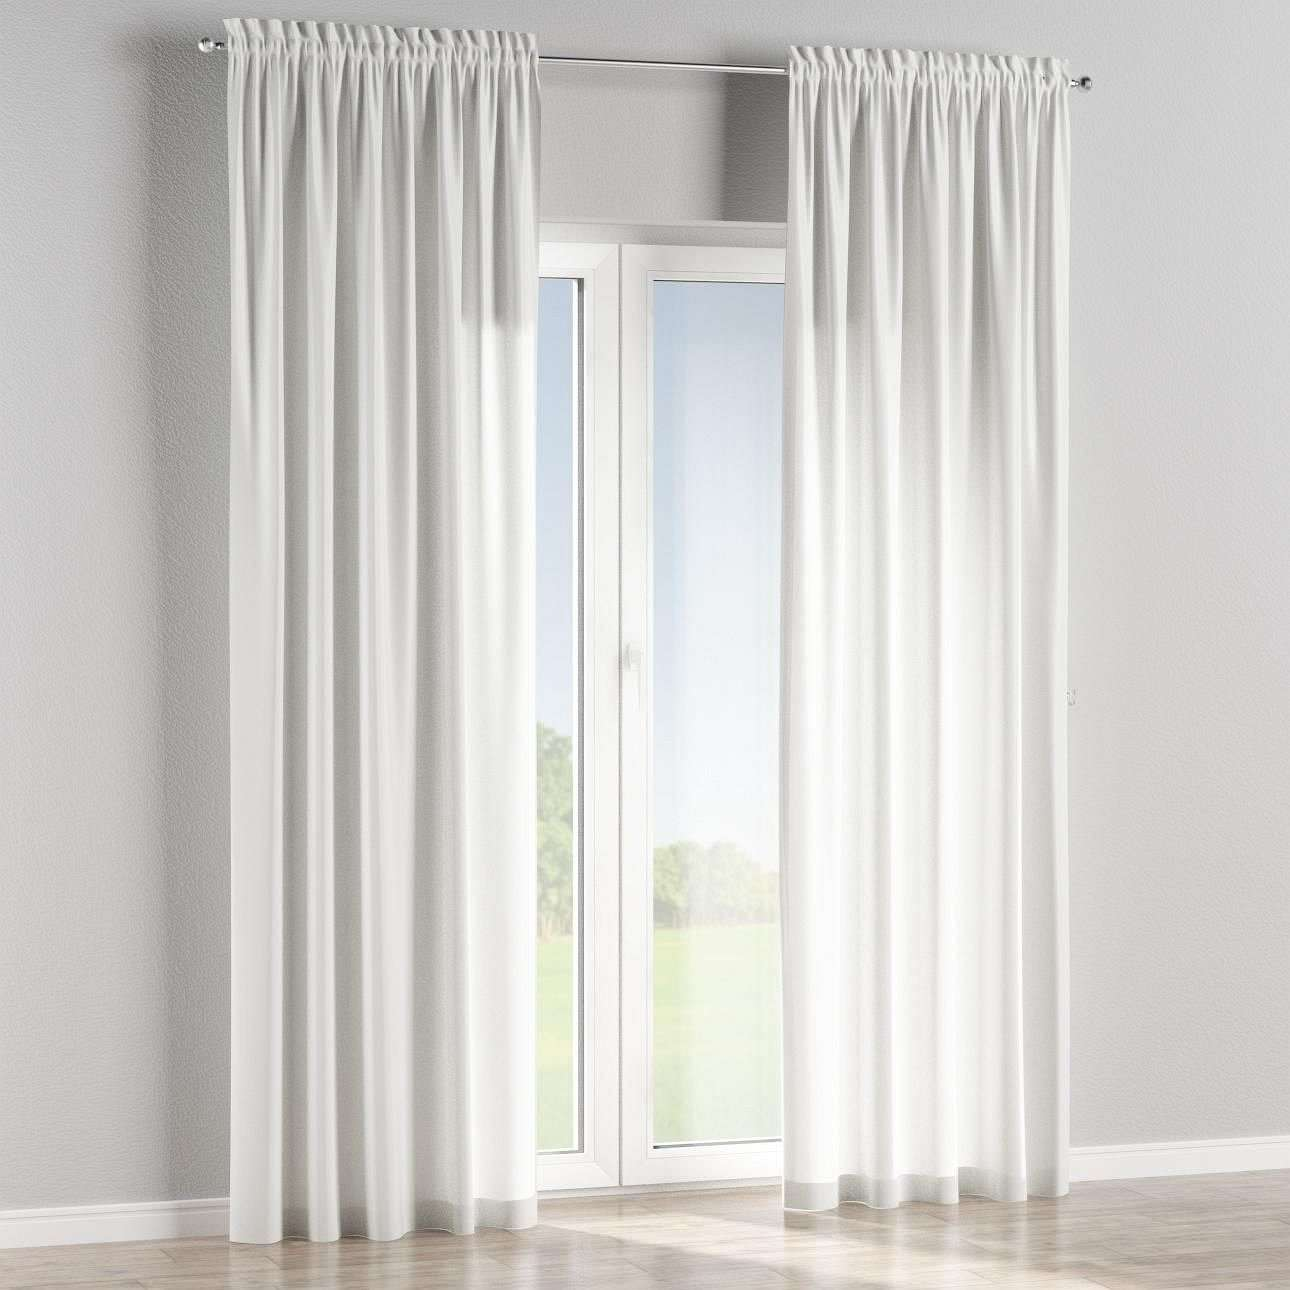 Slot and frill lined curtains in collection Cardiff, fabric: 136-26